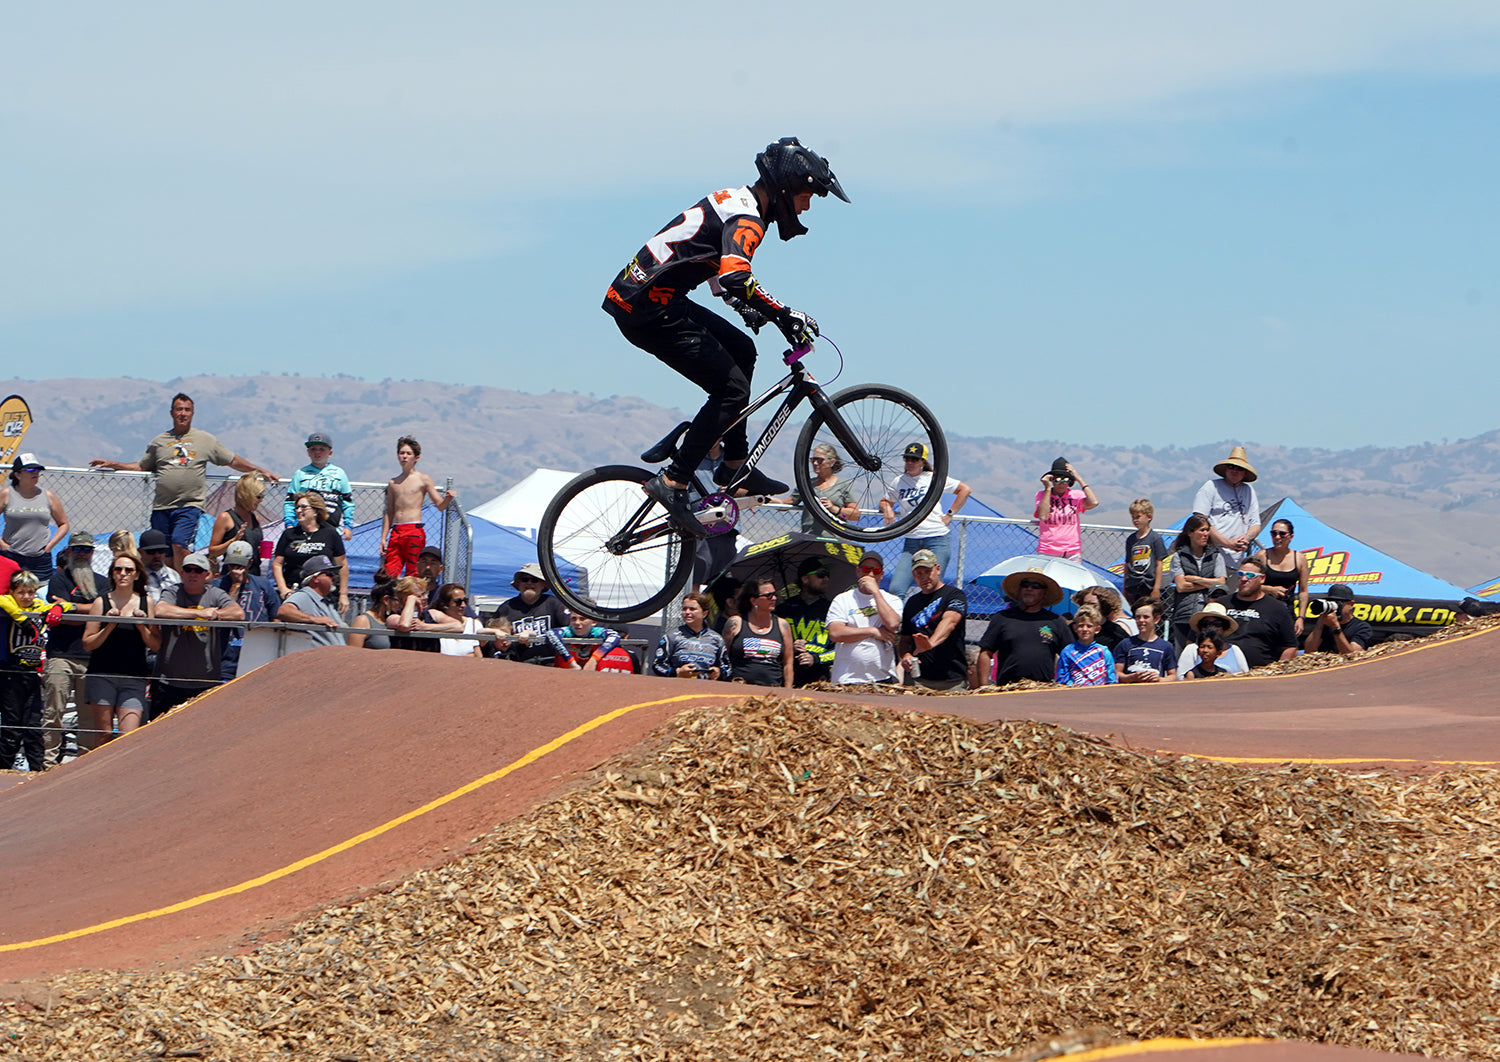 LRC/Mongoose at Golden State Nationals 2021